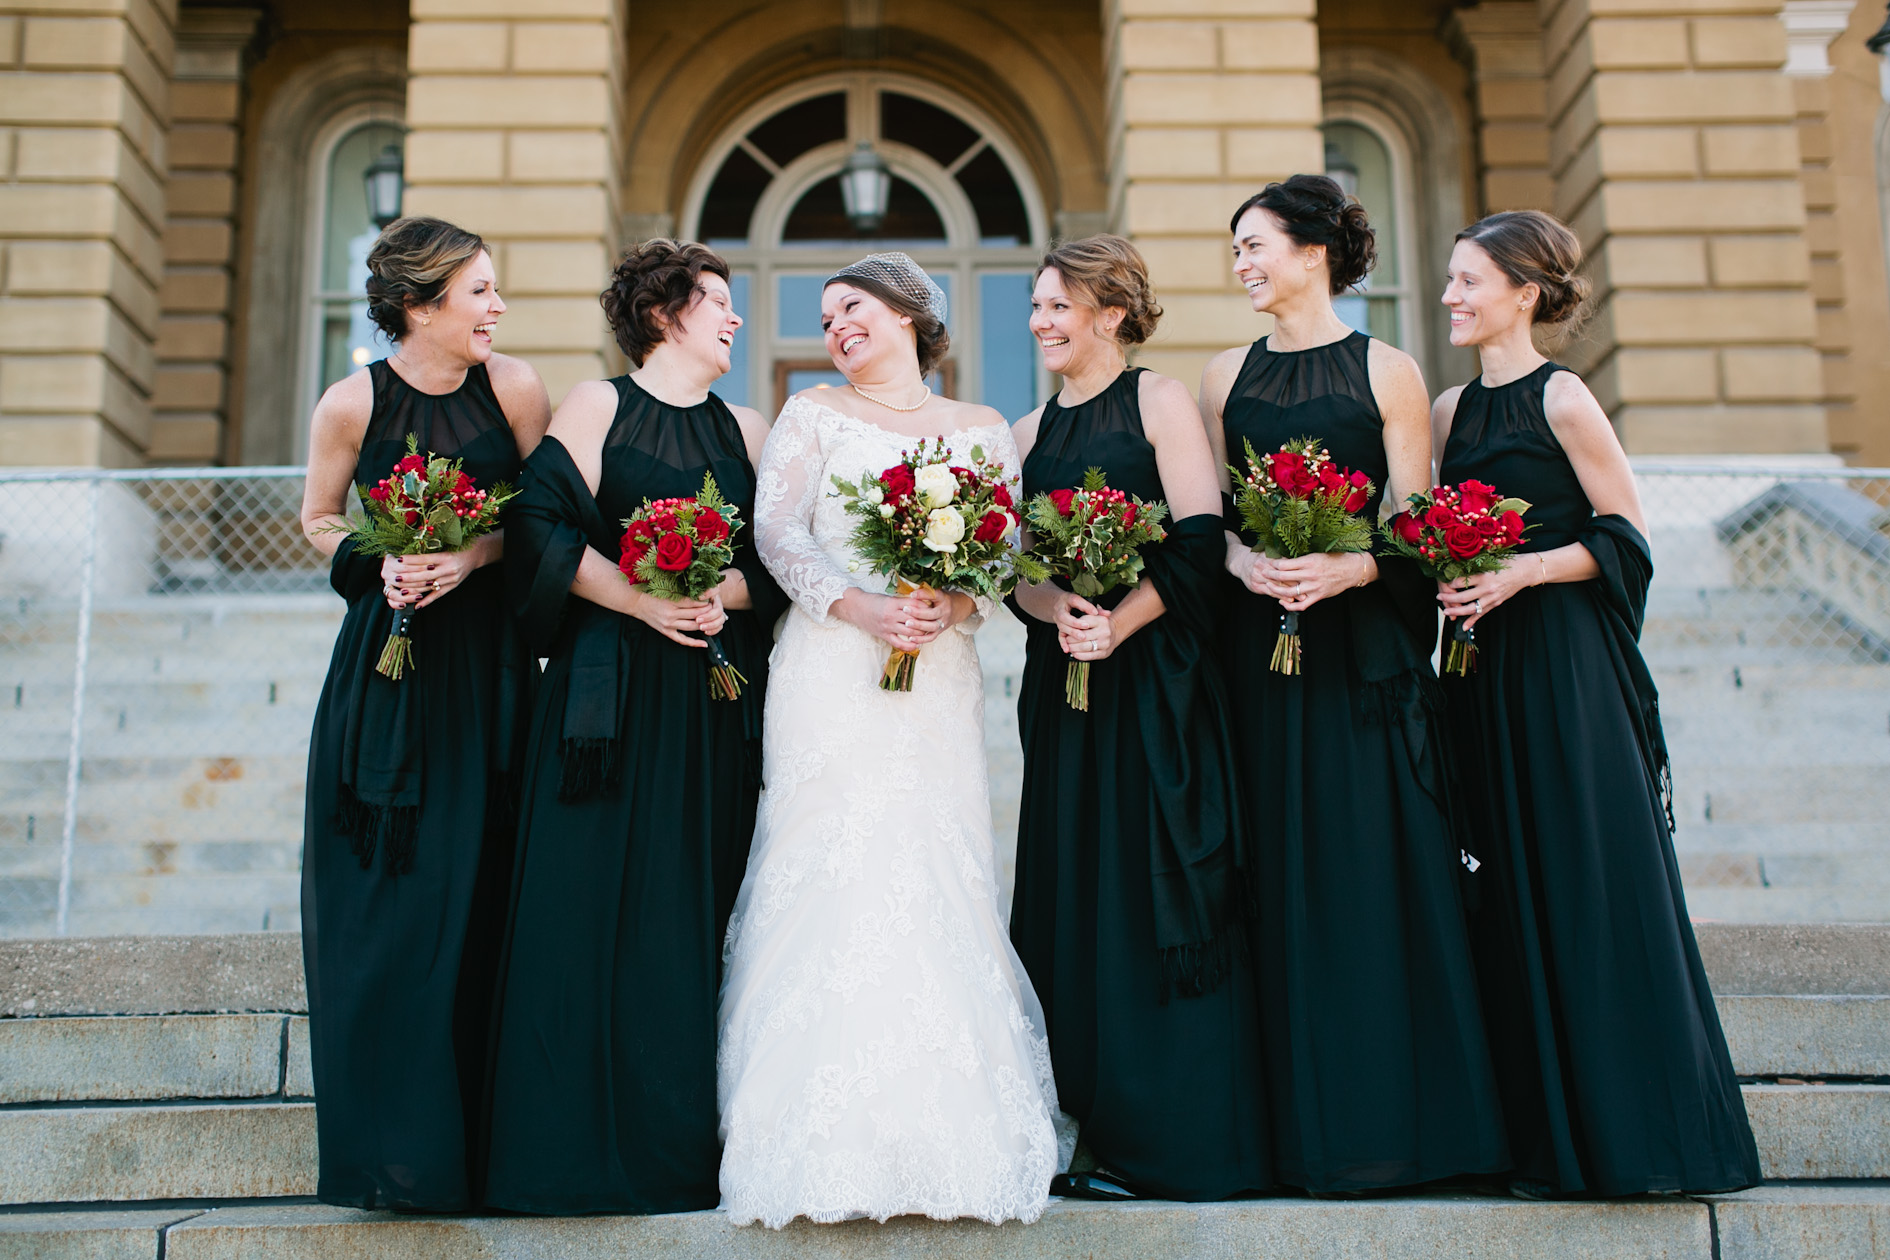 formal winter wedding dresses and red roses